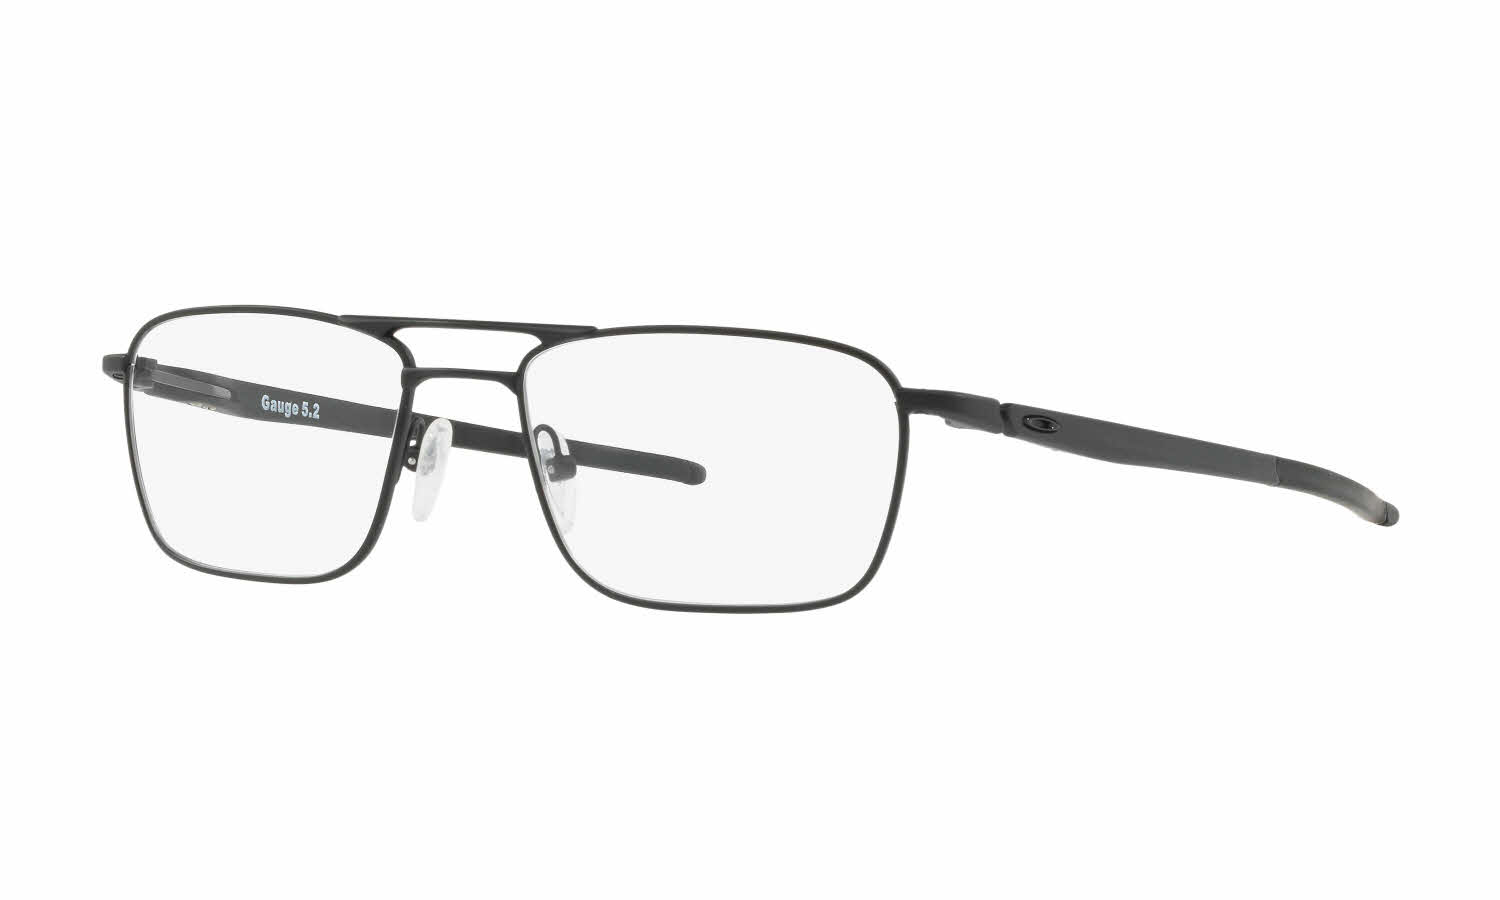 Oakley Gauge 5 2 Truss Eyeglasses